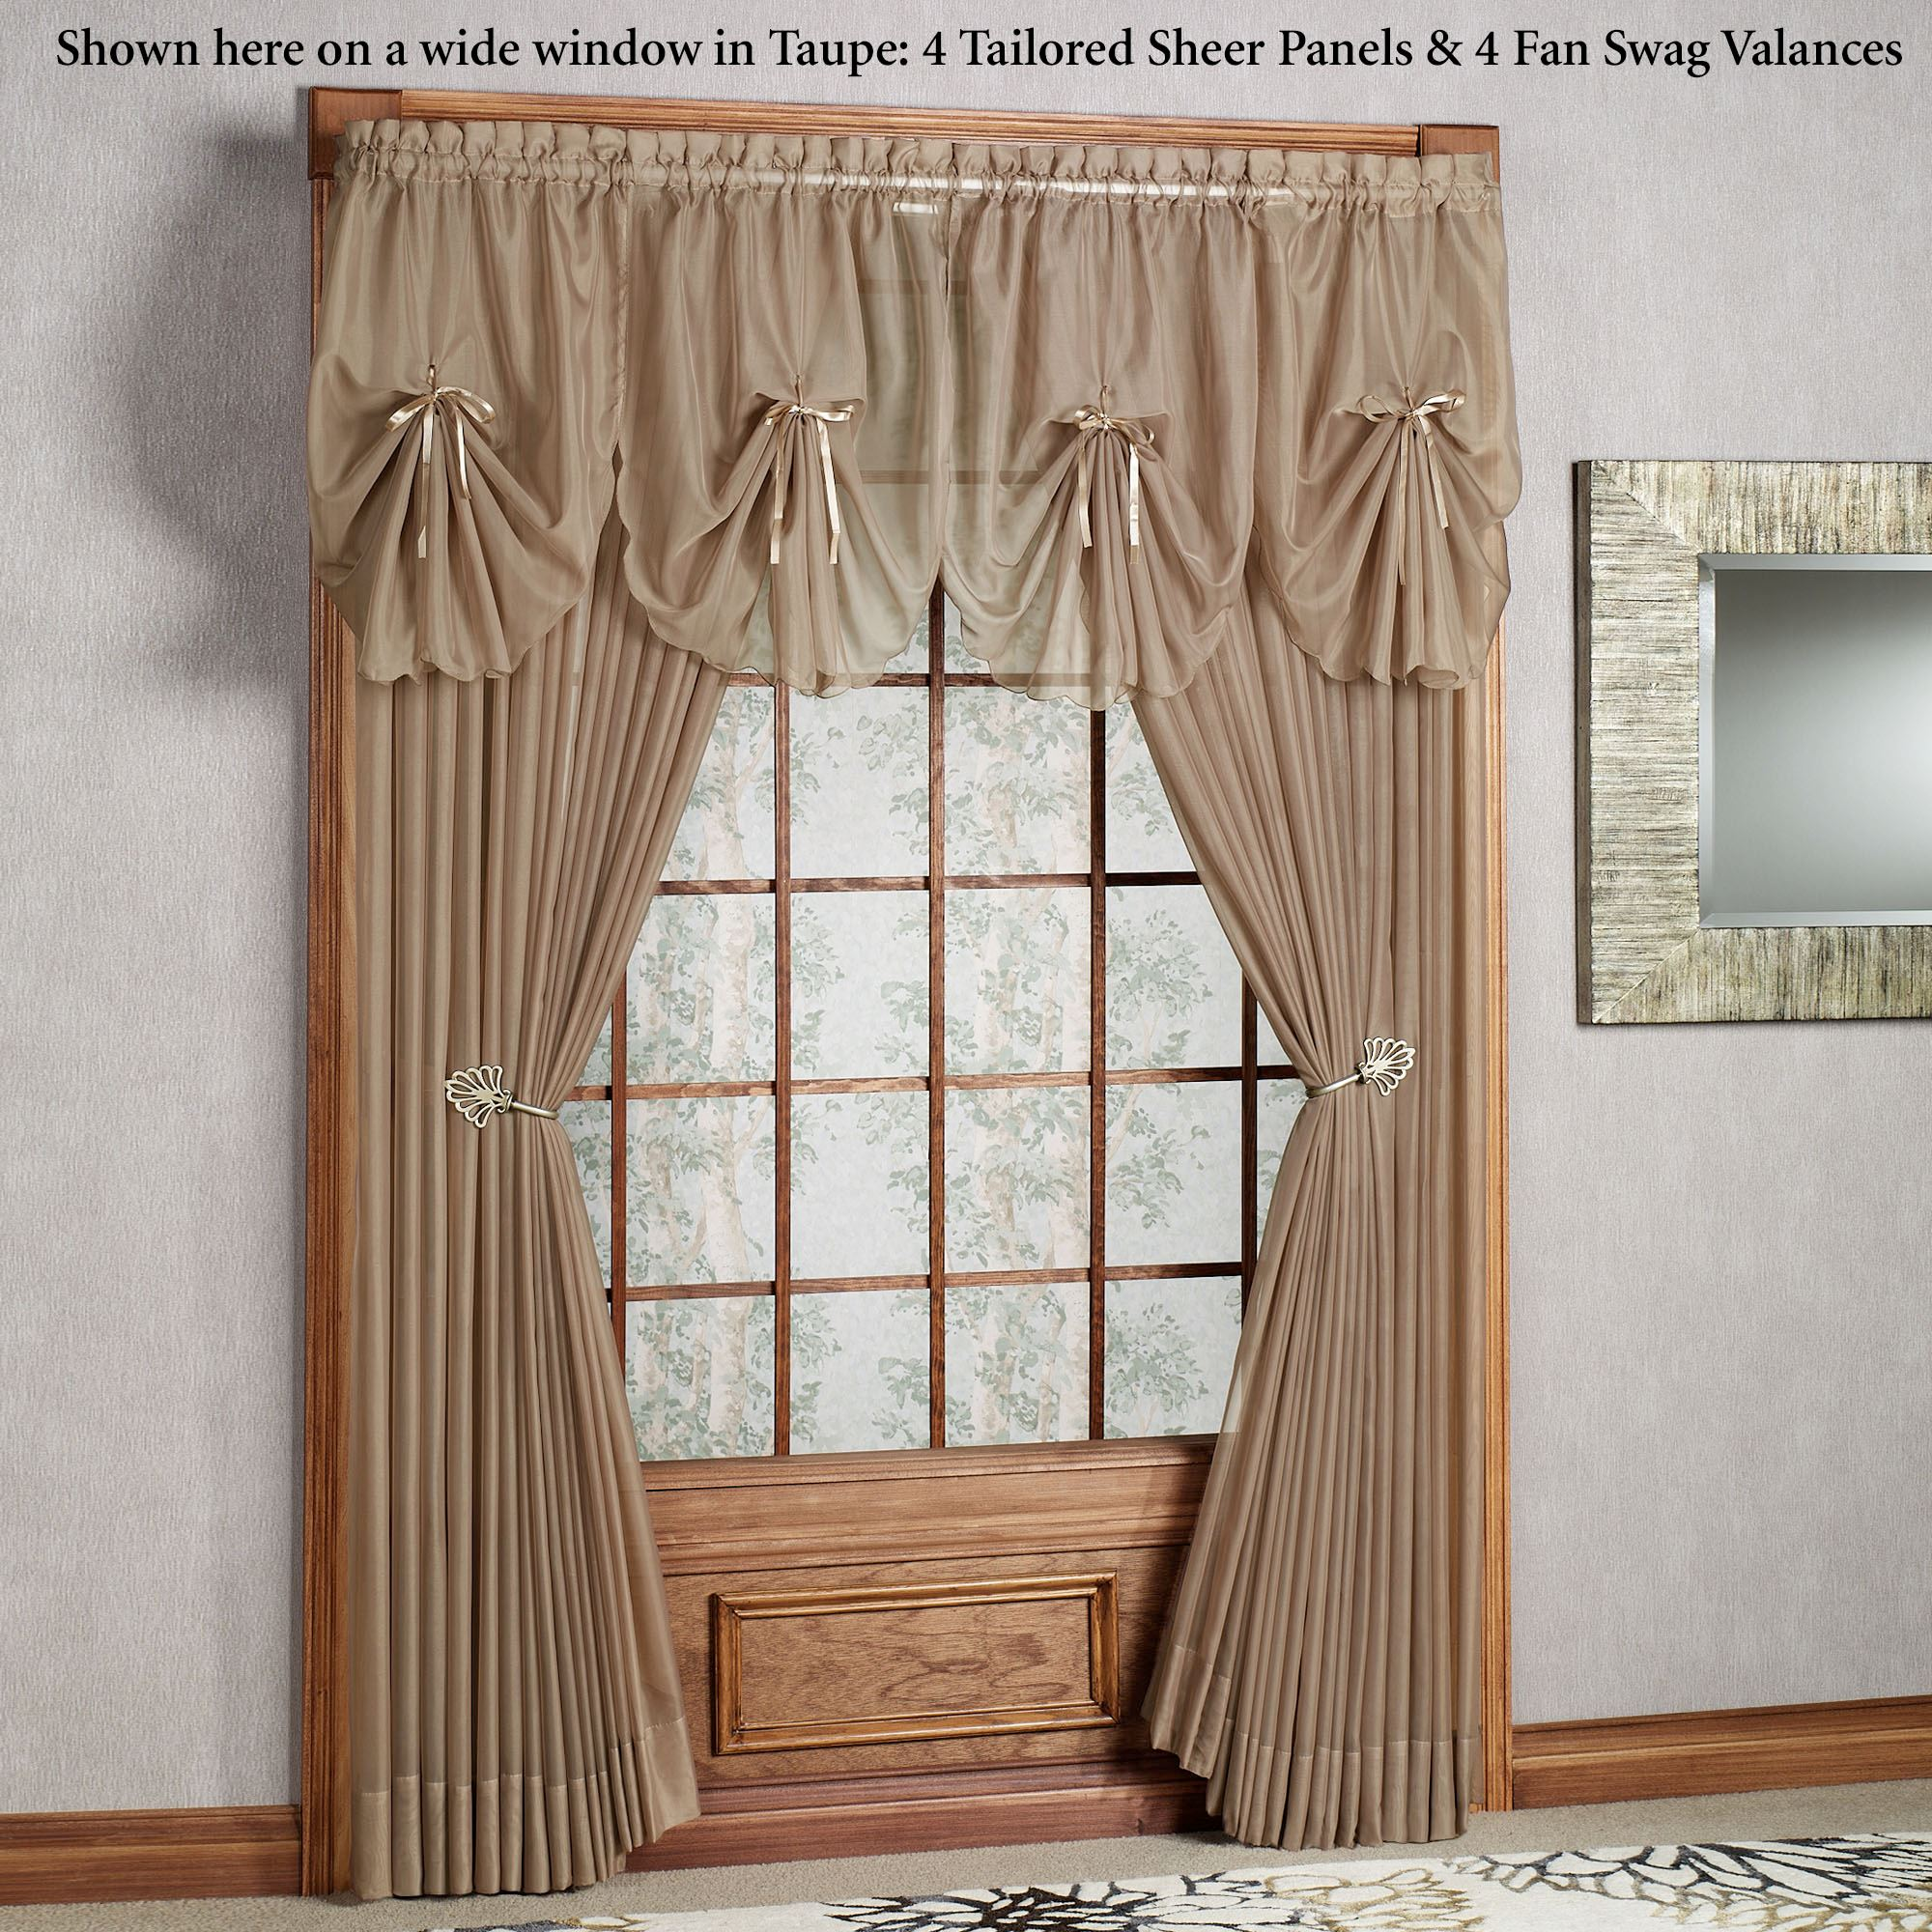 pocket rod marburn valance sheer panel products beaded helena ivory semi